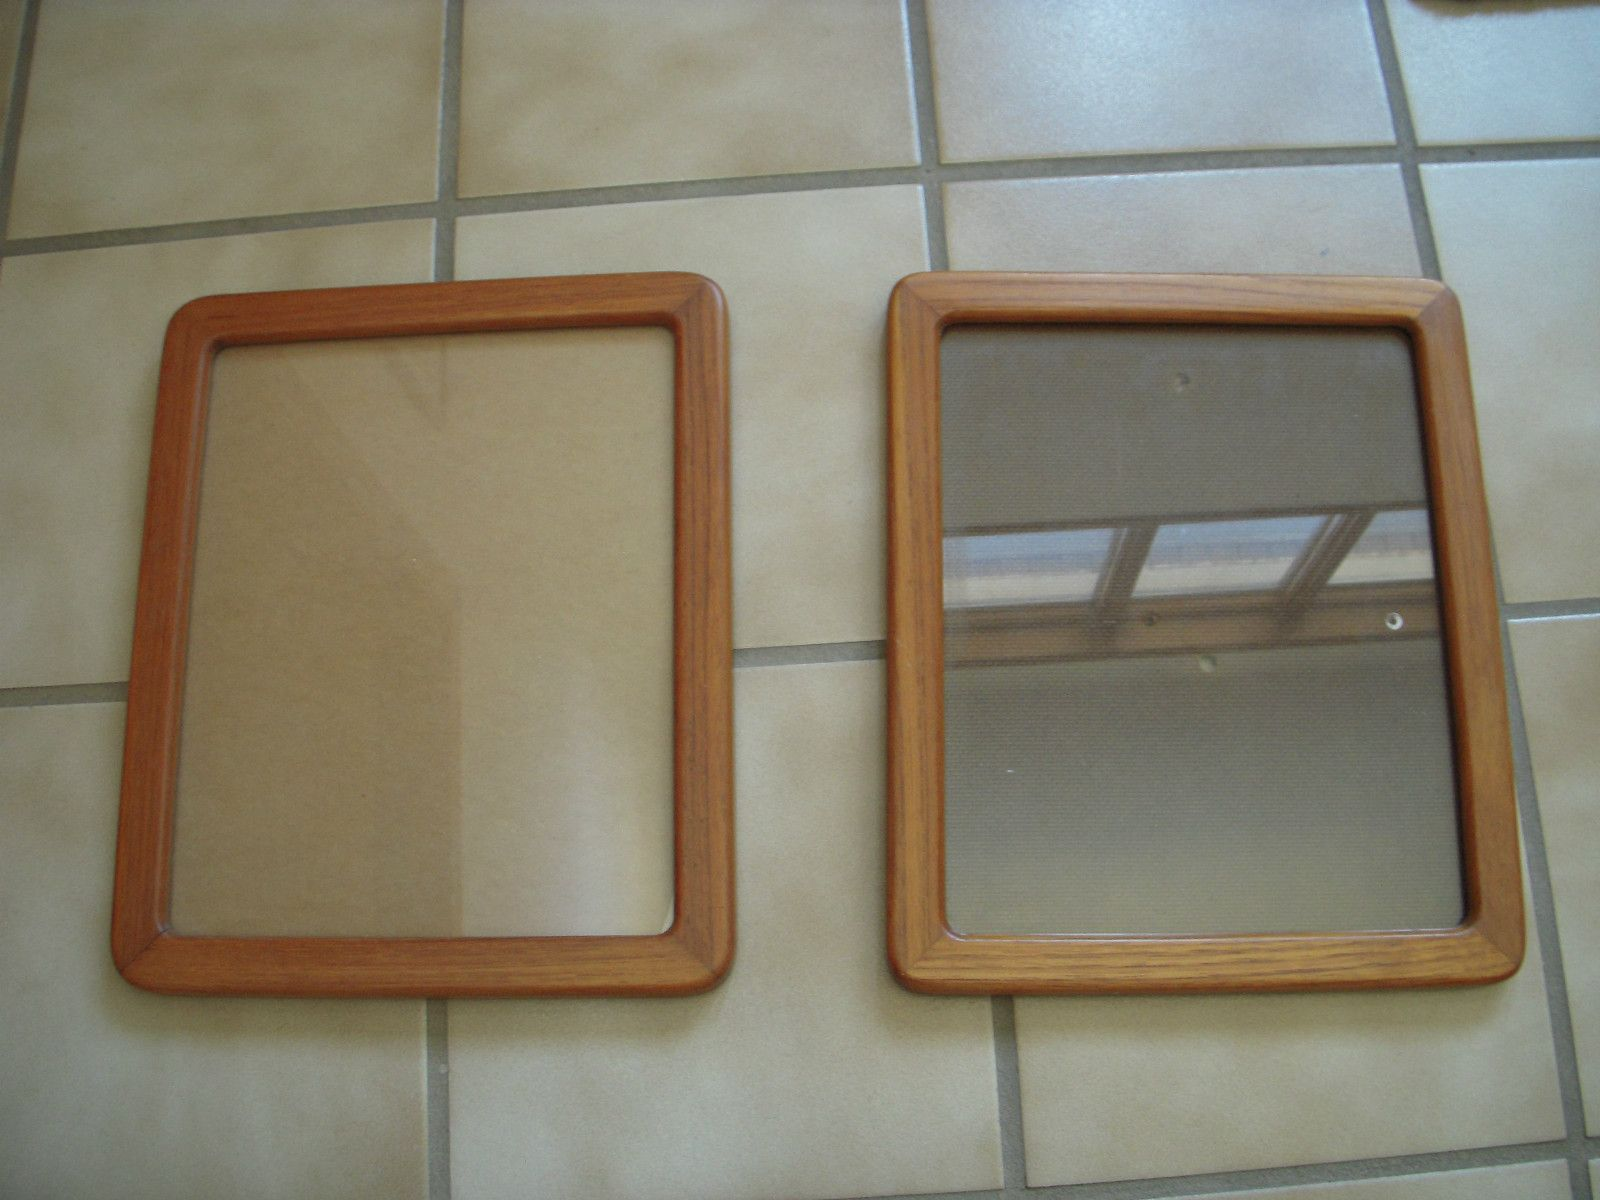 Set of 2 Teak wood picture frames, 8x10, mid century modern, made in ...